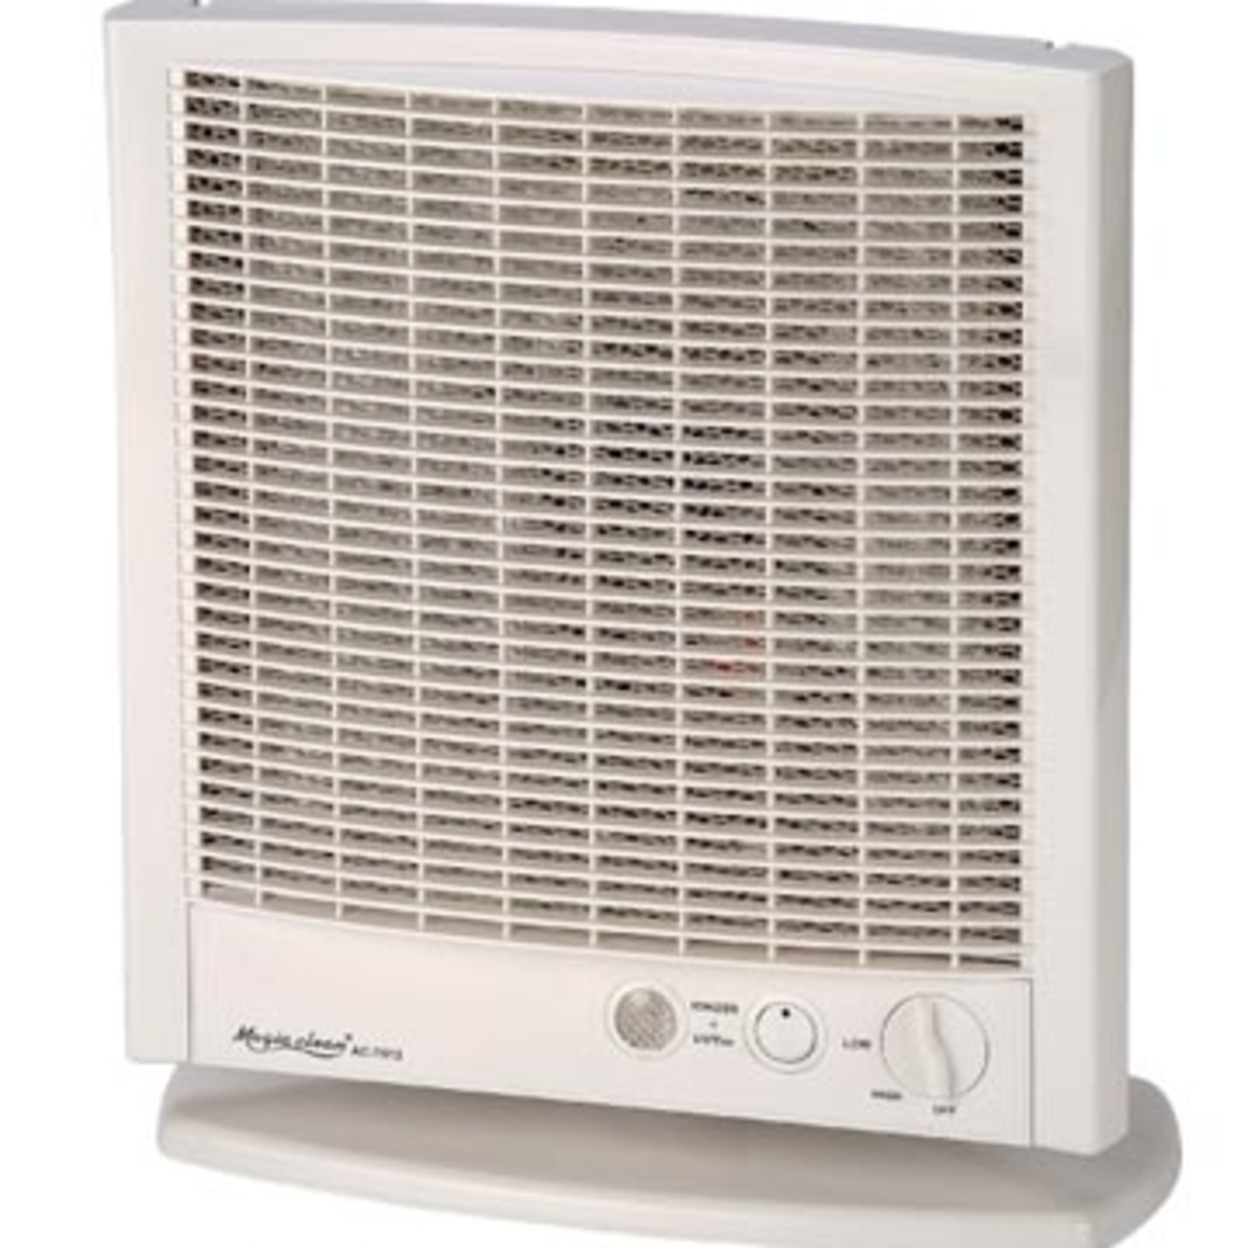 SPT-AC-7013-Magic Clean Air Cleaner with TiO2 and Ionizer by Sunpentown 5a6f01f8e2246159f91b3ff8